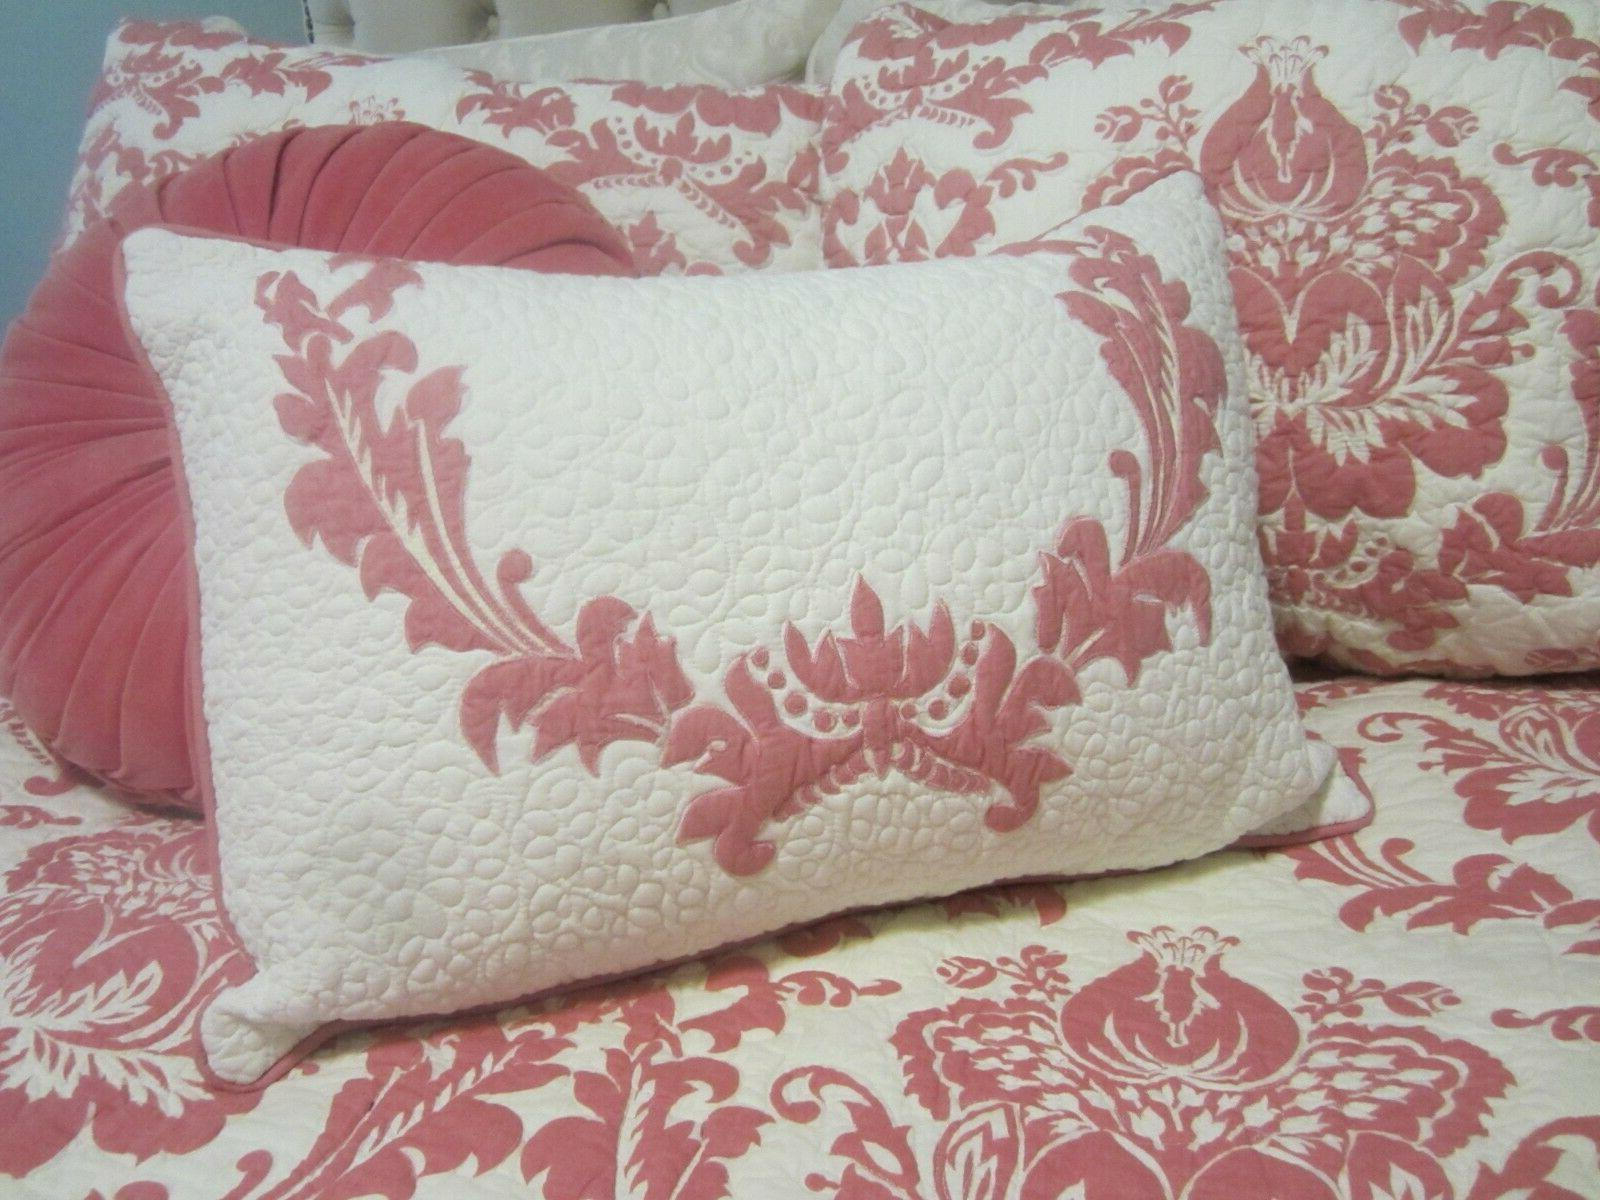 AMITY HOME DAMASK TWIN SZ 6 PC QUILT SET INDIA